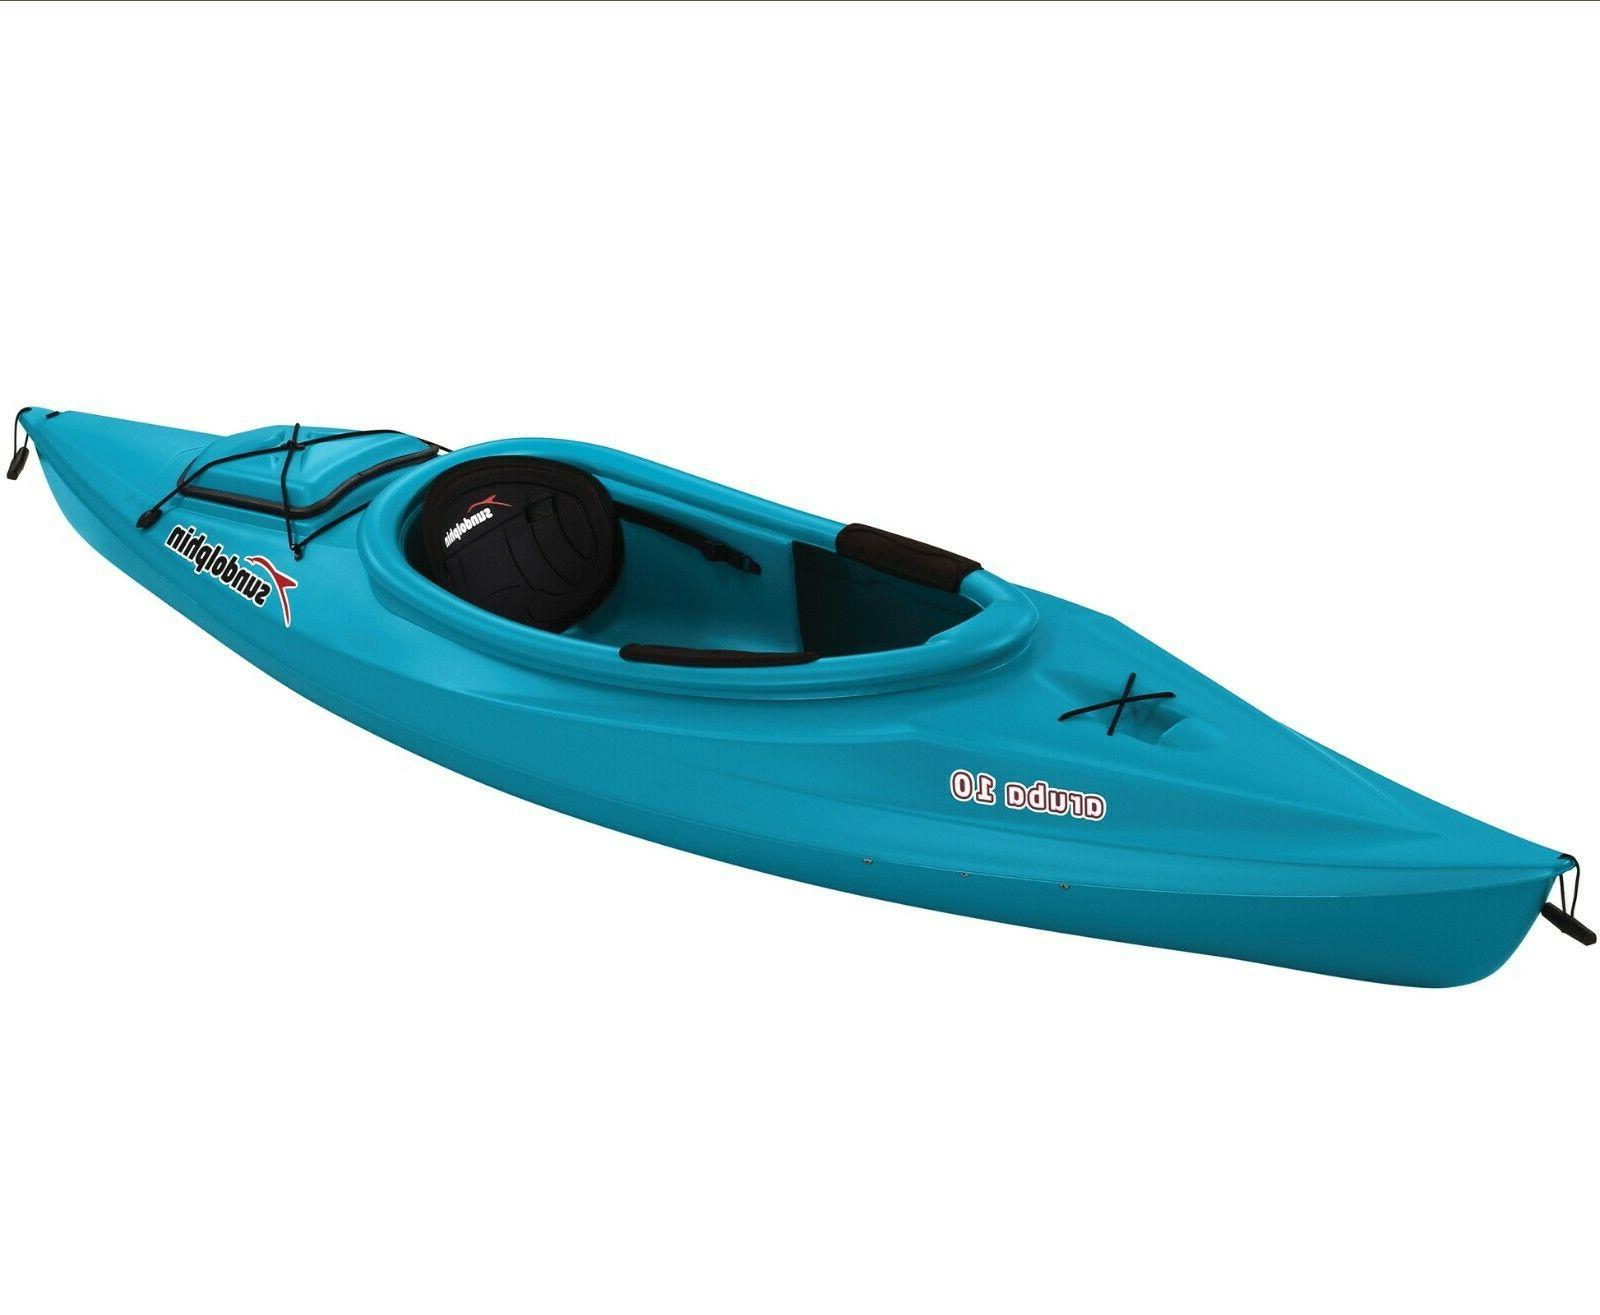 10' Outdoor Sports Boat Paddle Included Dolphin